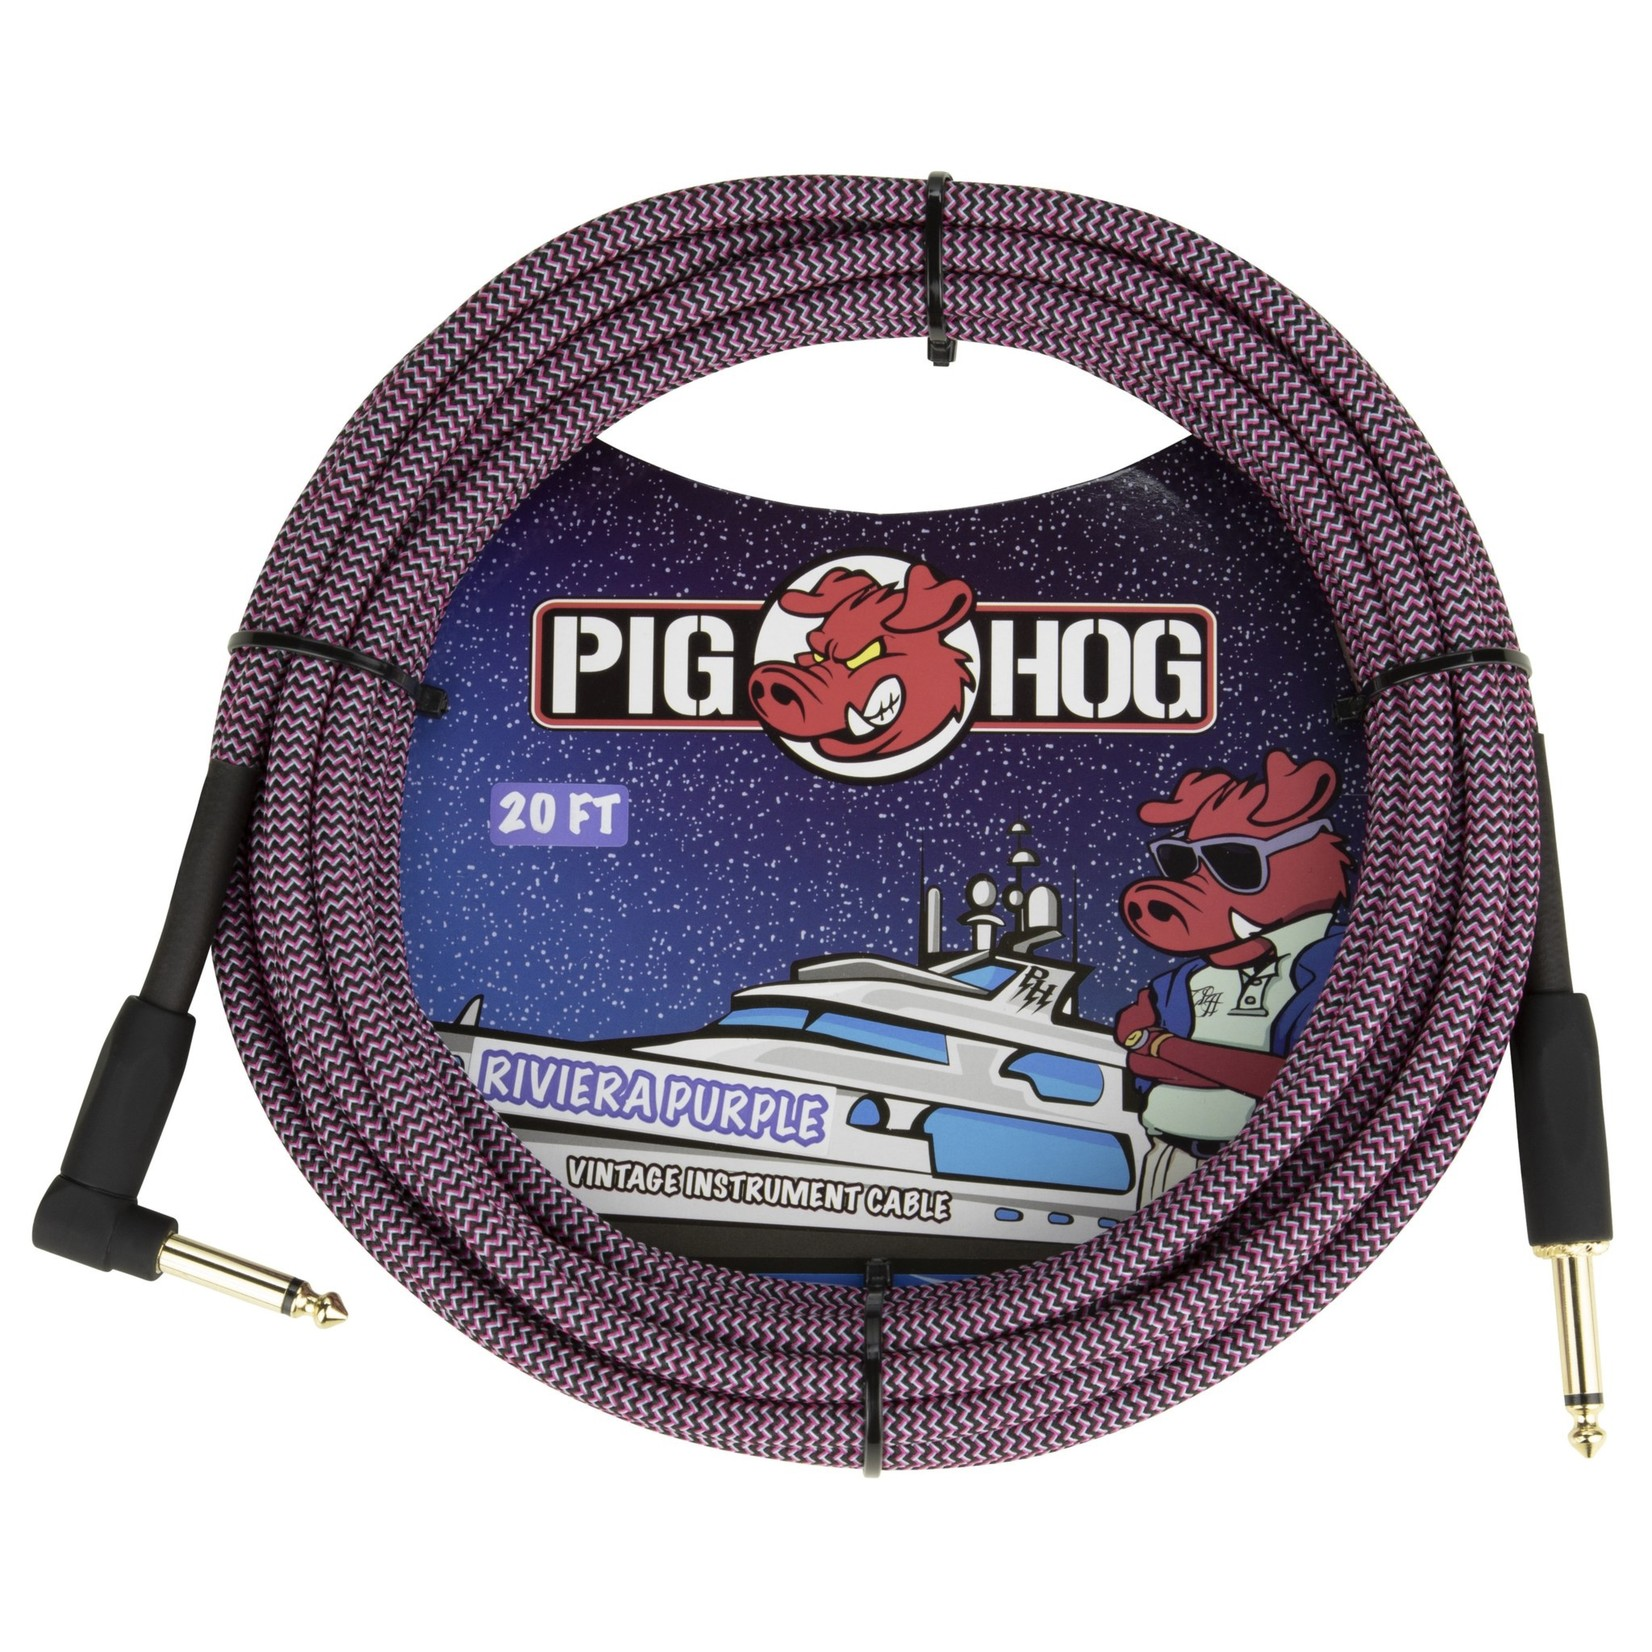 "Pig Hog Pig Hog 20-Foot Vintage Woven Instrument Cable, 1/4"" Straight-Right Angle, Riviera Purple - New 2020"